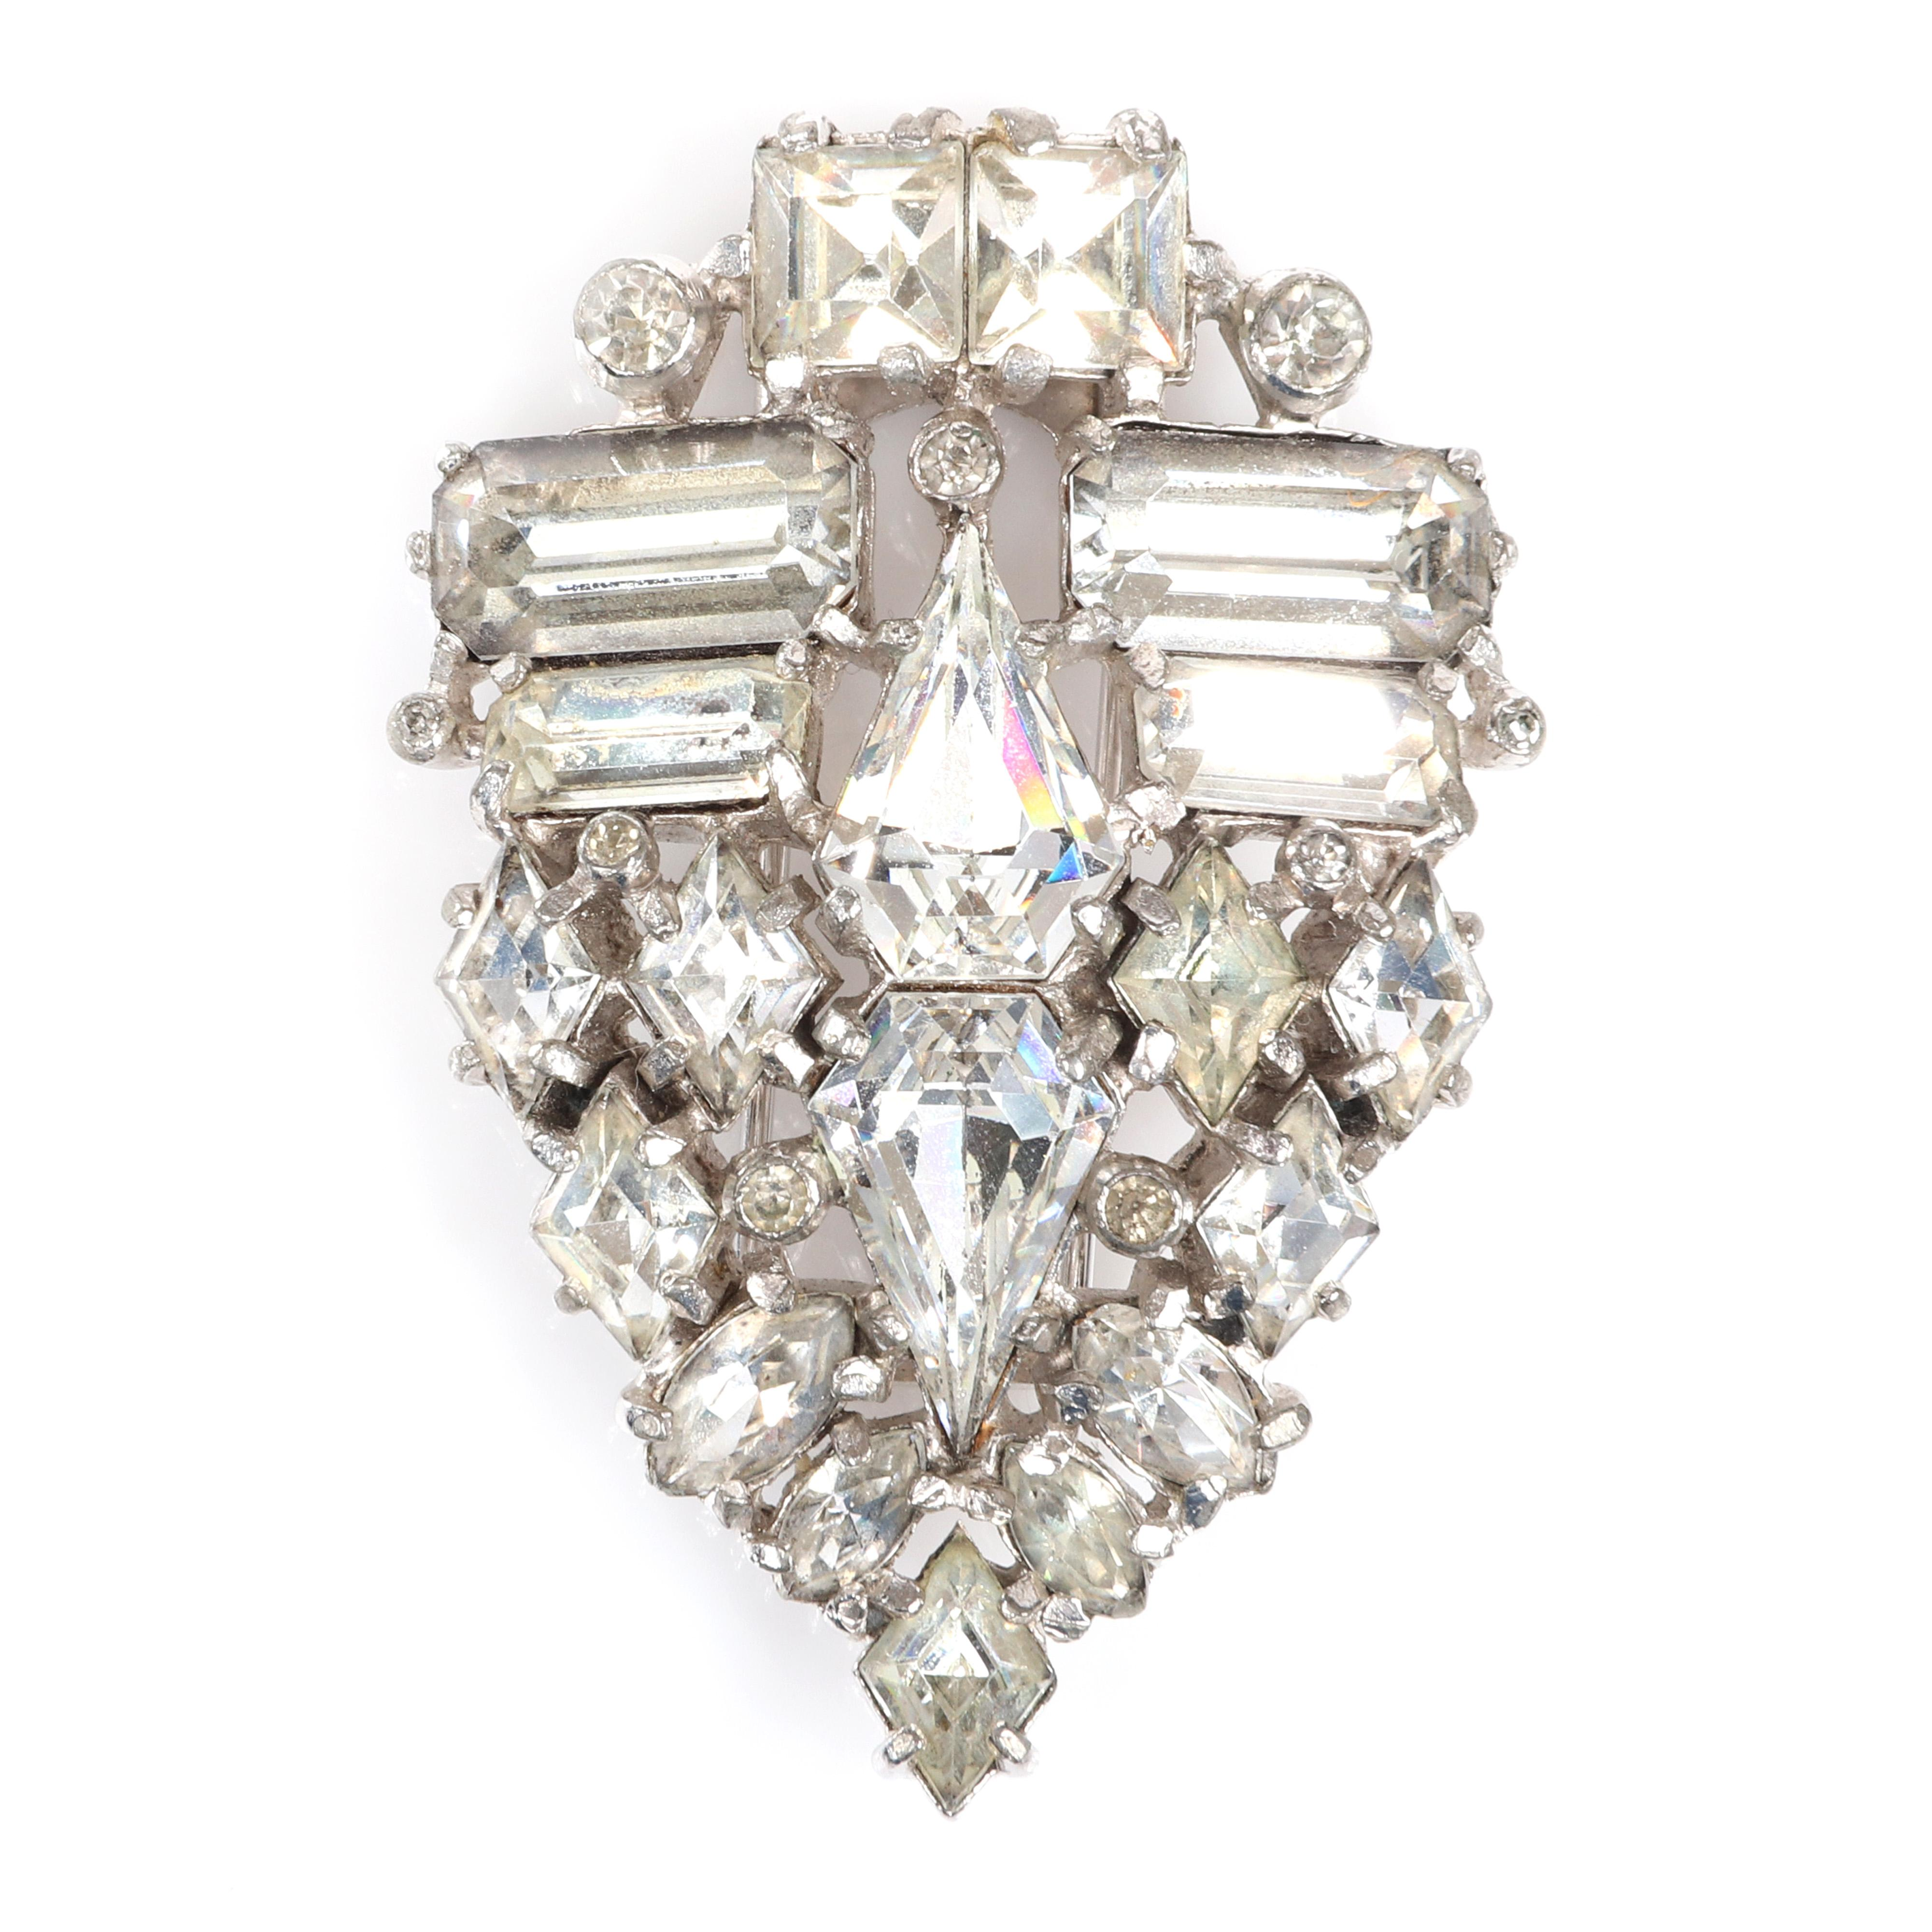 """Eisenberg Original abstract triangular fur clip with silver pot metal and a variety of stone cuts including pear, marquise, round and oval and clear pave sets c. 1940. 3 1/8"""" x 3 3/4"""""""